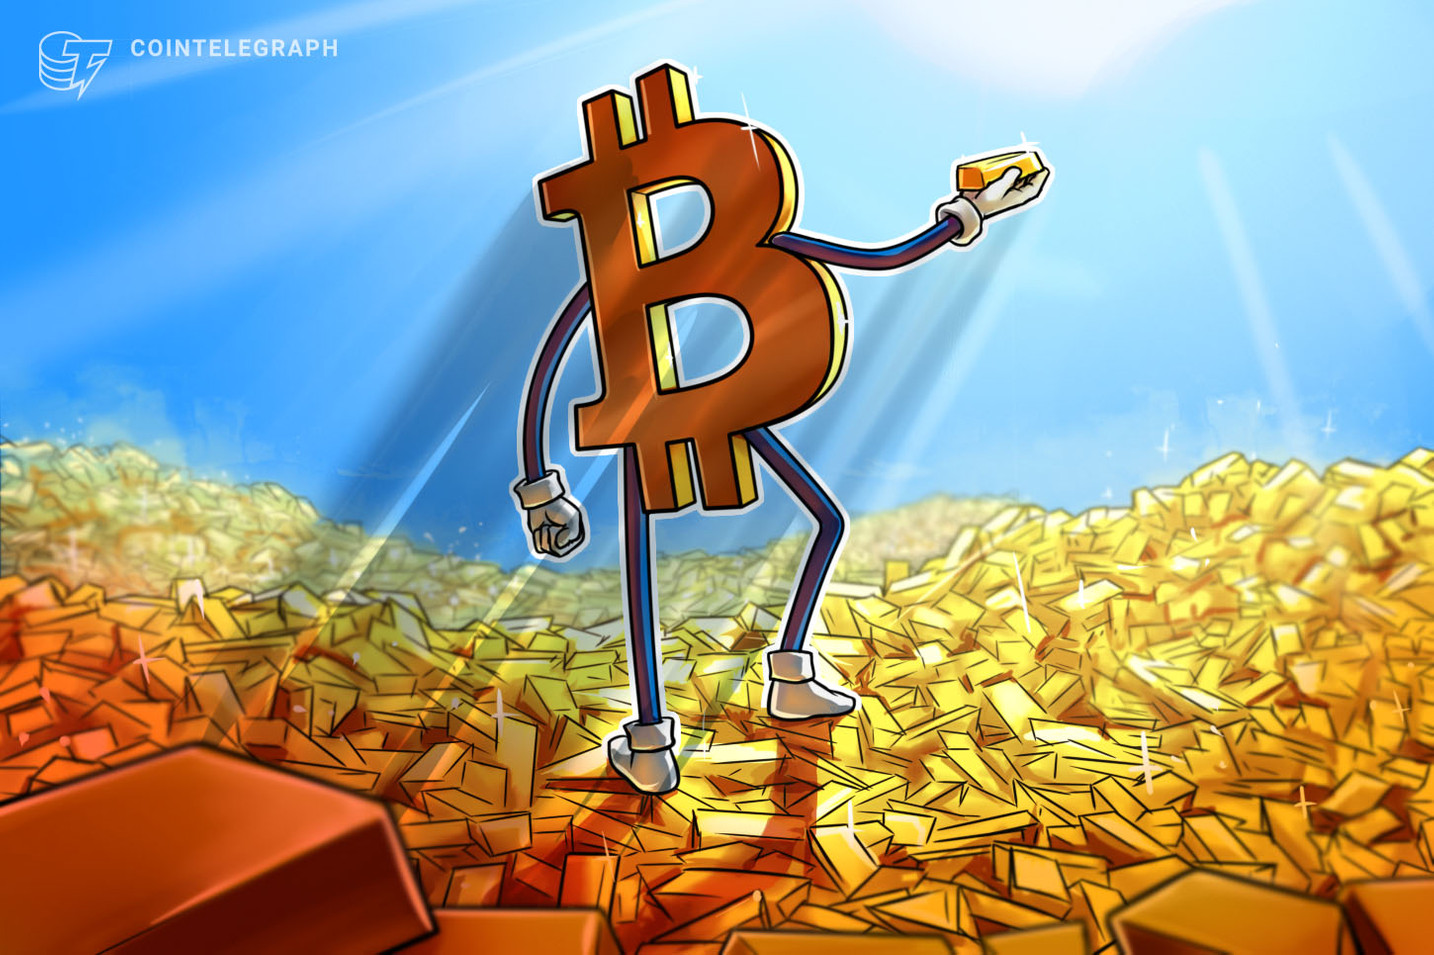 Bitcoin may sustain $10K as gold nears 'inflection point' vs. stocks